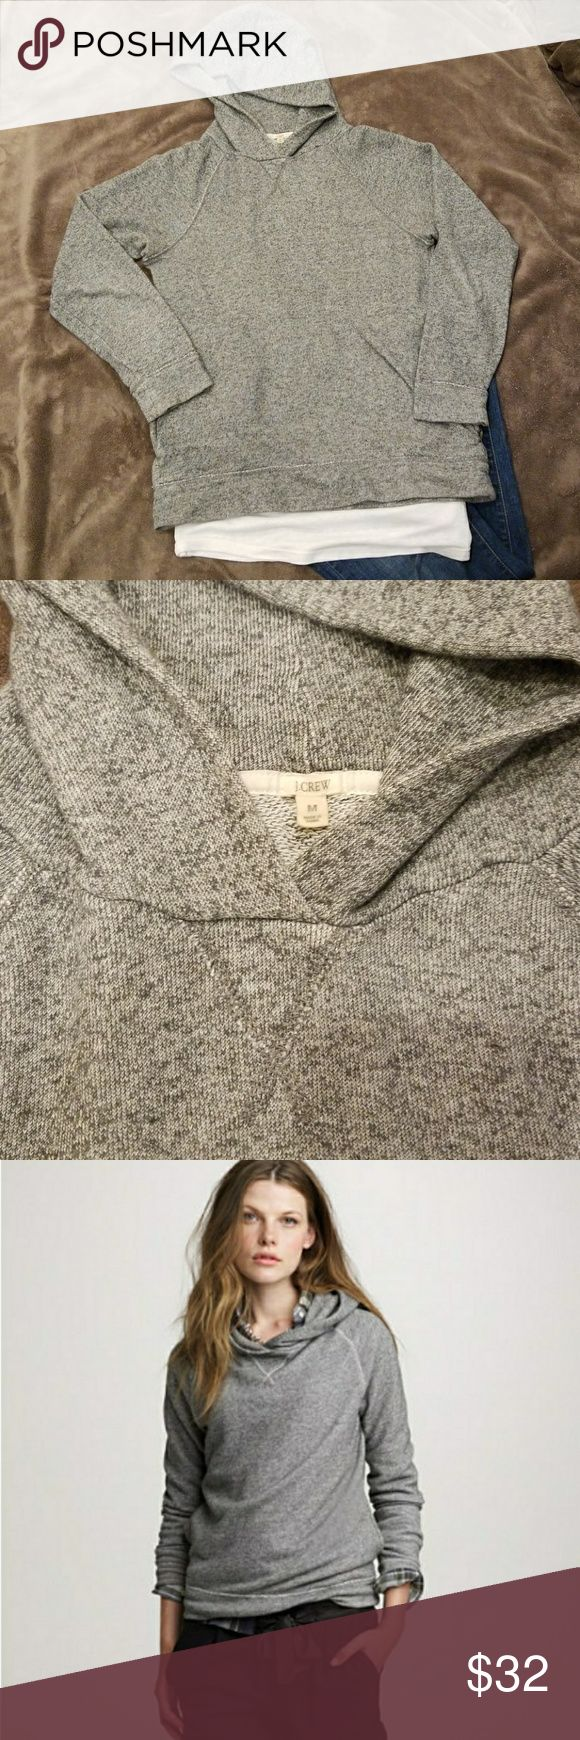 """J. CREW Haya Pullover Hoodie J. CREW Haya Pullover Hoodie Pockets on sides Size M Casual & comfortable hoodie Good pre-owned condition  From J. CREW Site: Haya, meaning """"quick and light"""" in Japanese, perfectly describes the fabric of this hoodie—a luxuriously soft and lightweight Japanese terry cotton crafted into a casually chic, throw-on-and-go piece. J. Crew Tops Sweatshirts & Hoodies"""